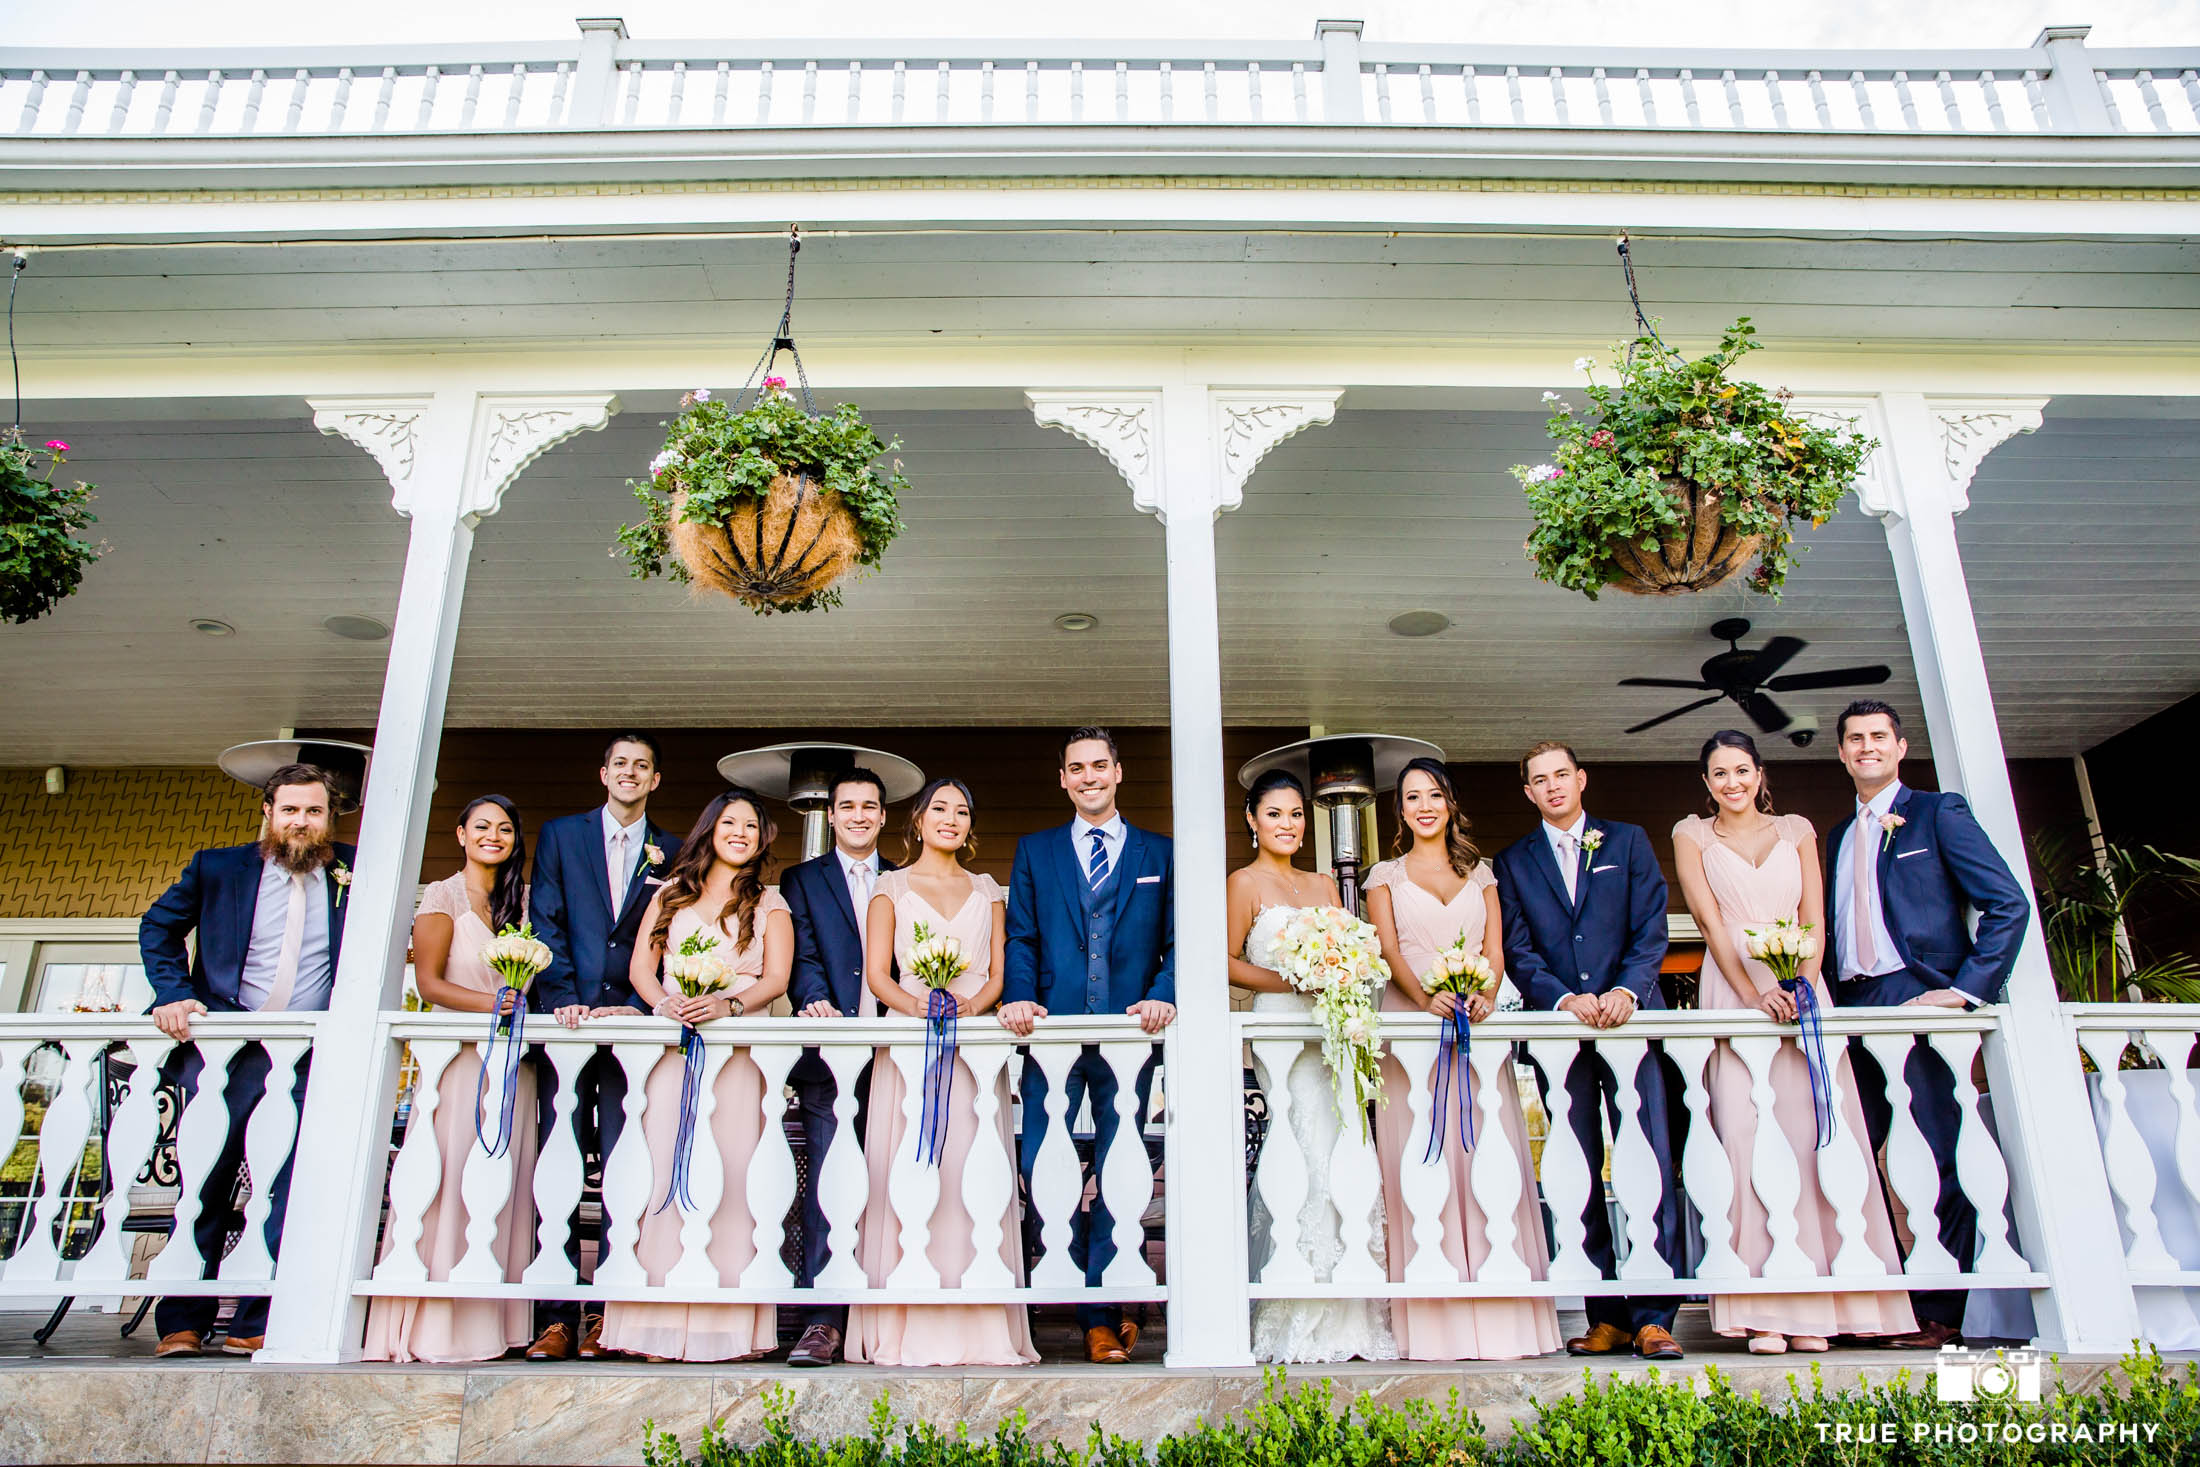 The mansion porch is a perfect place to take a bridal party photo.